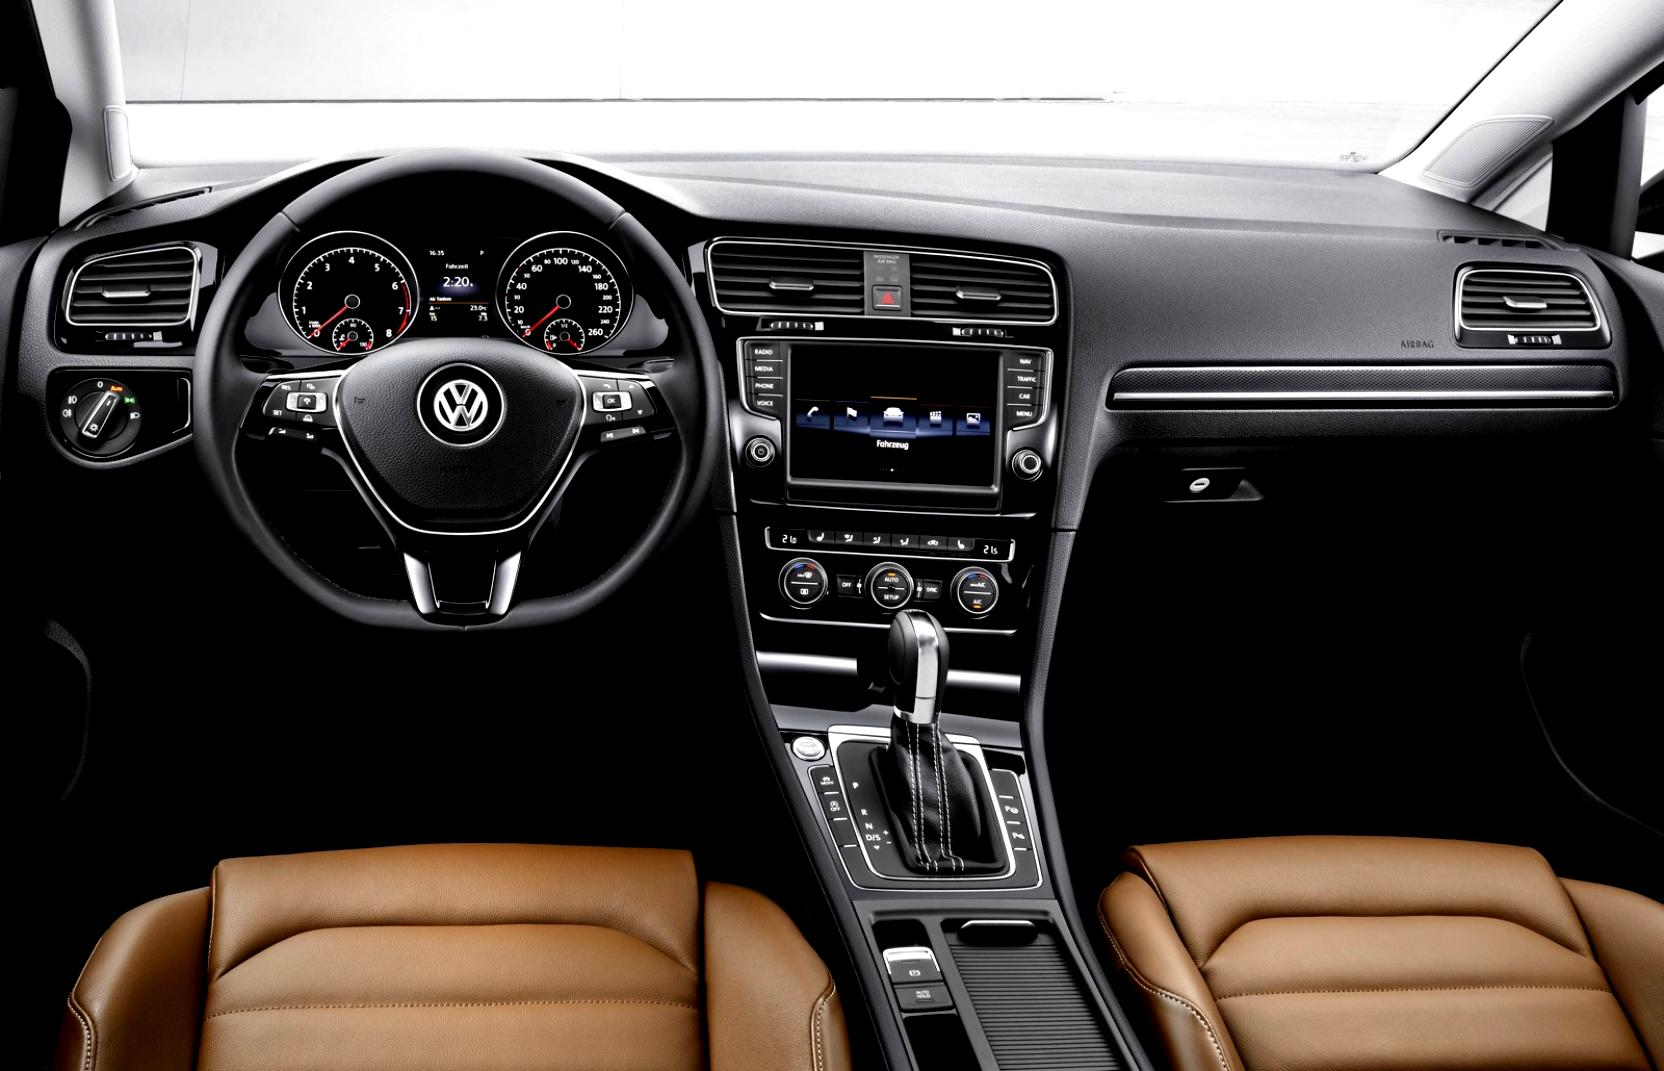 Volkswagen Golf VII 5 Doors 2012 #85